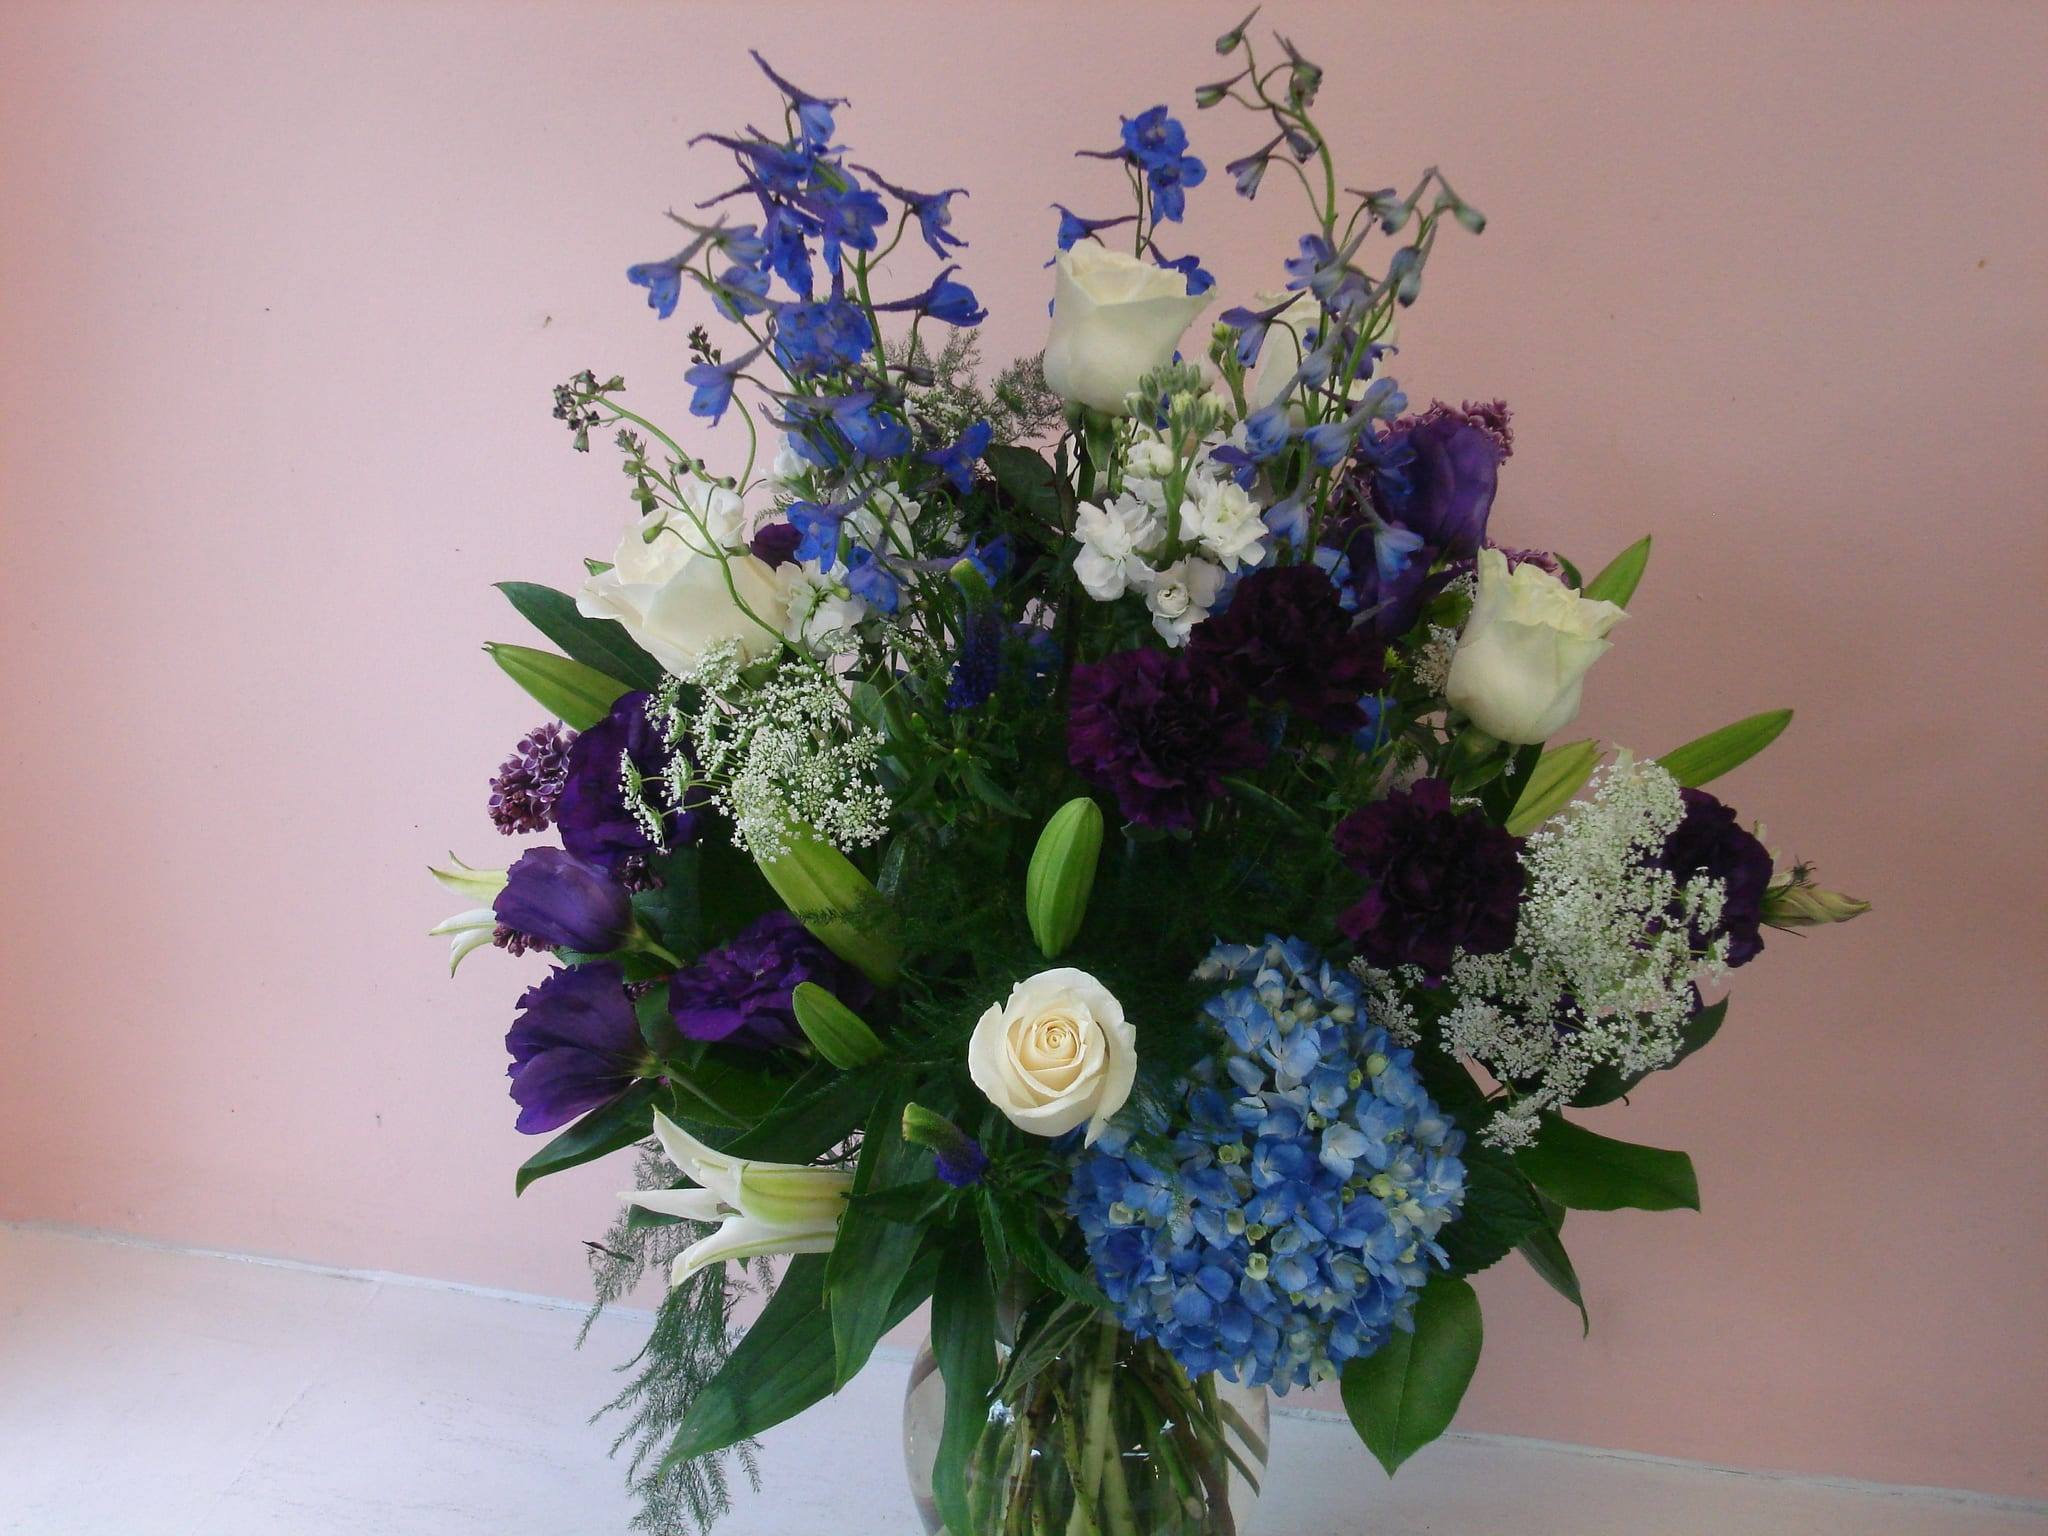 Pretty In Blue Flower Arrangement With Blue Hydrangea Blue Bella Donna Purple Lisianthus And More By Fillmore Florist San Francisco